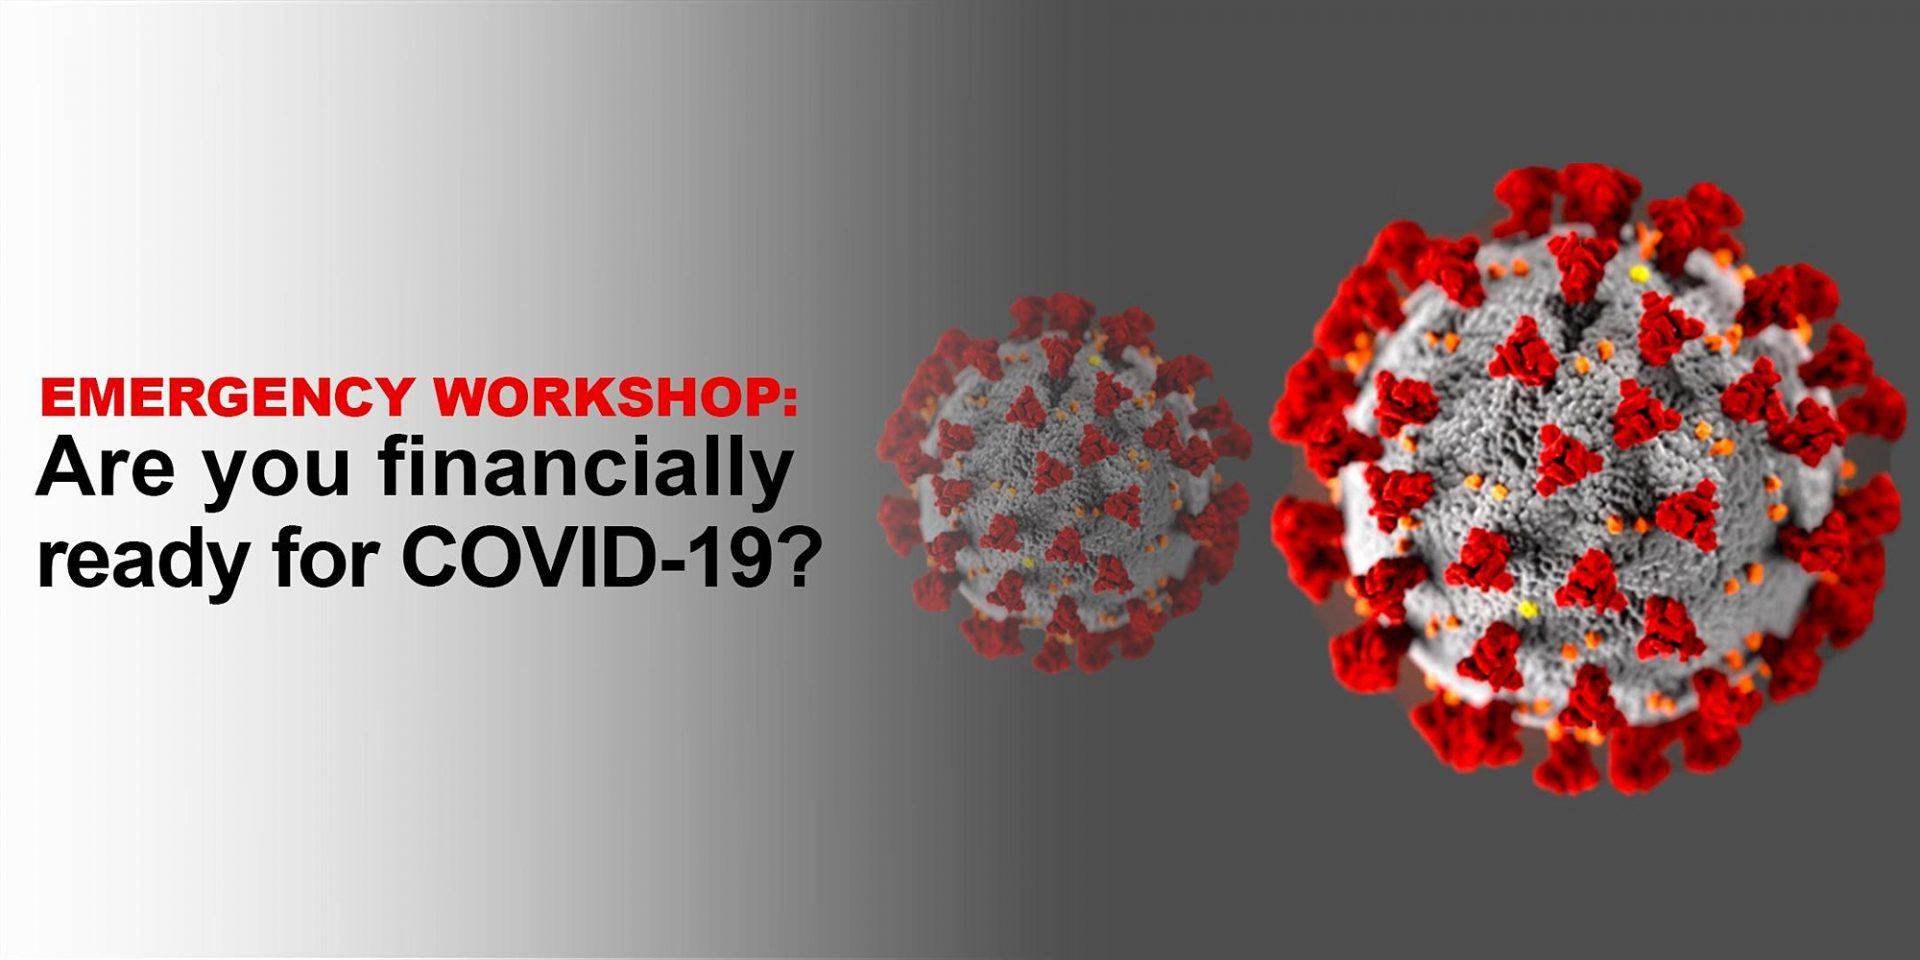 Are you financially ready for COVID-19